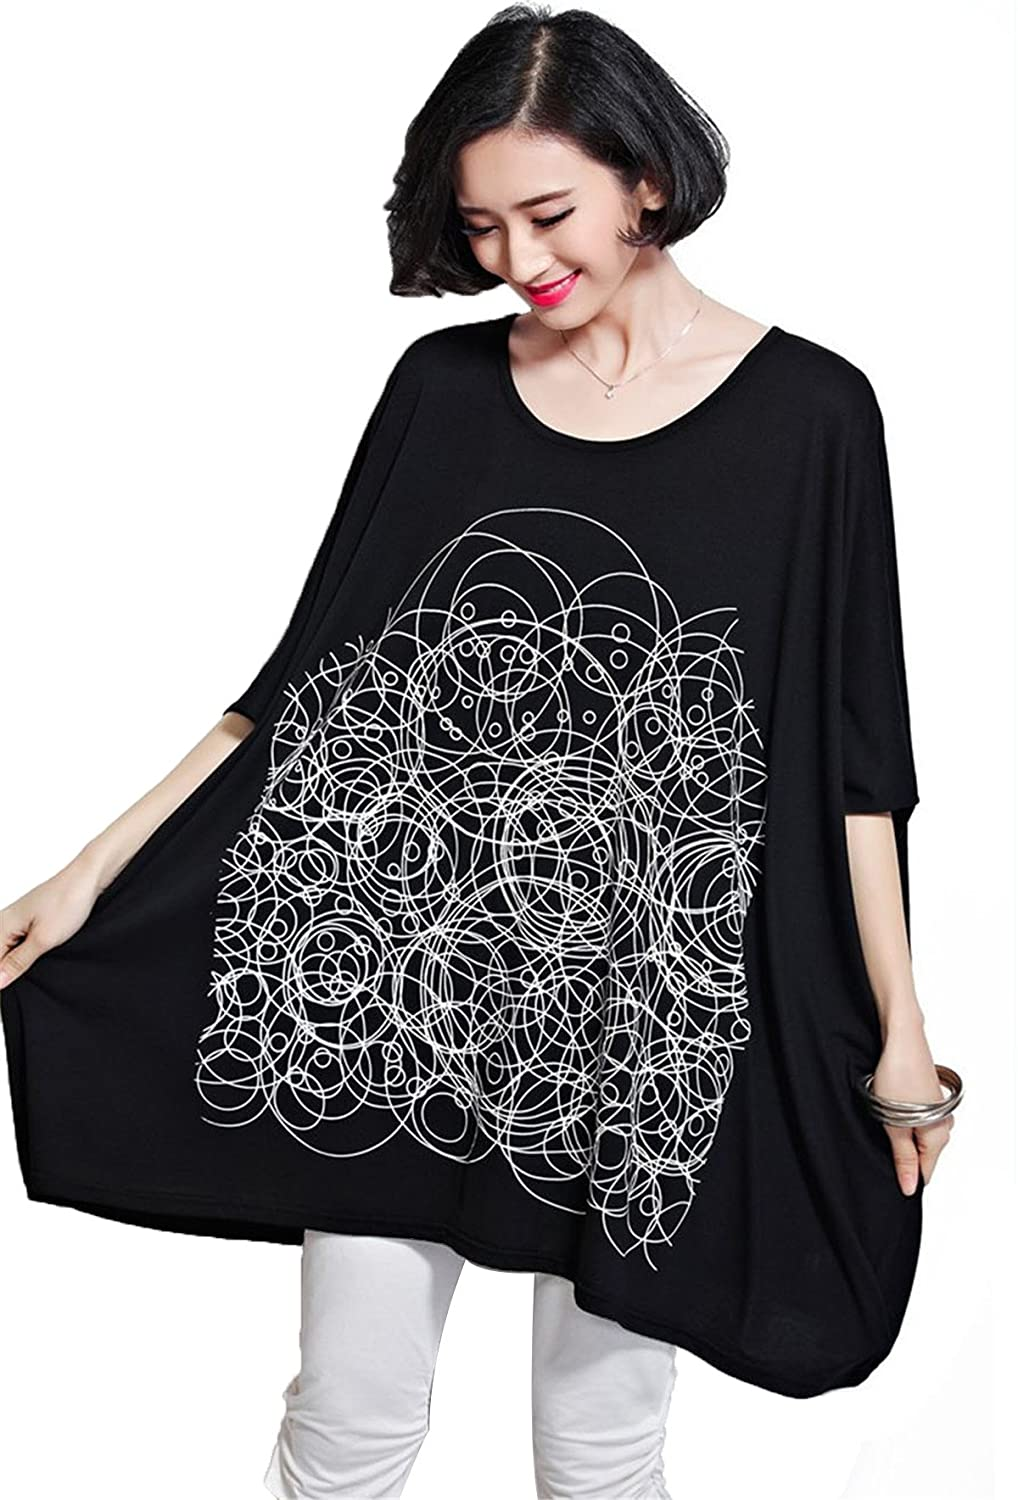 YJWAN Summer Women Plus Size Clothing Short Sleeve Soft Cotton Tunic Loose T Shirt CX226-BK